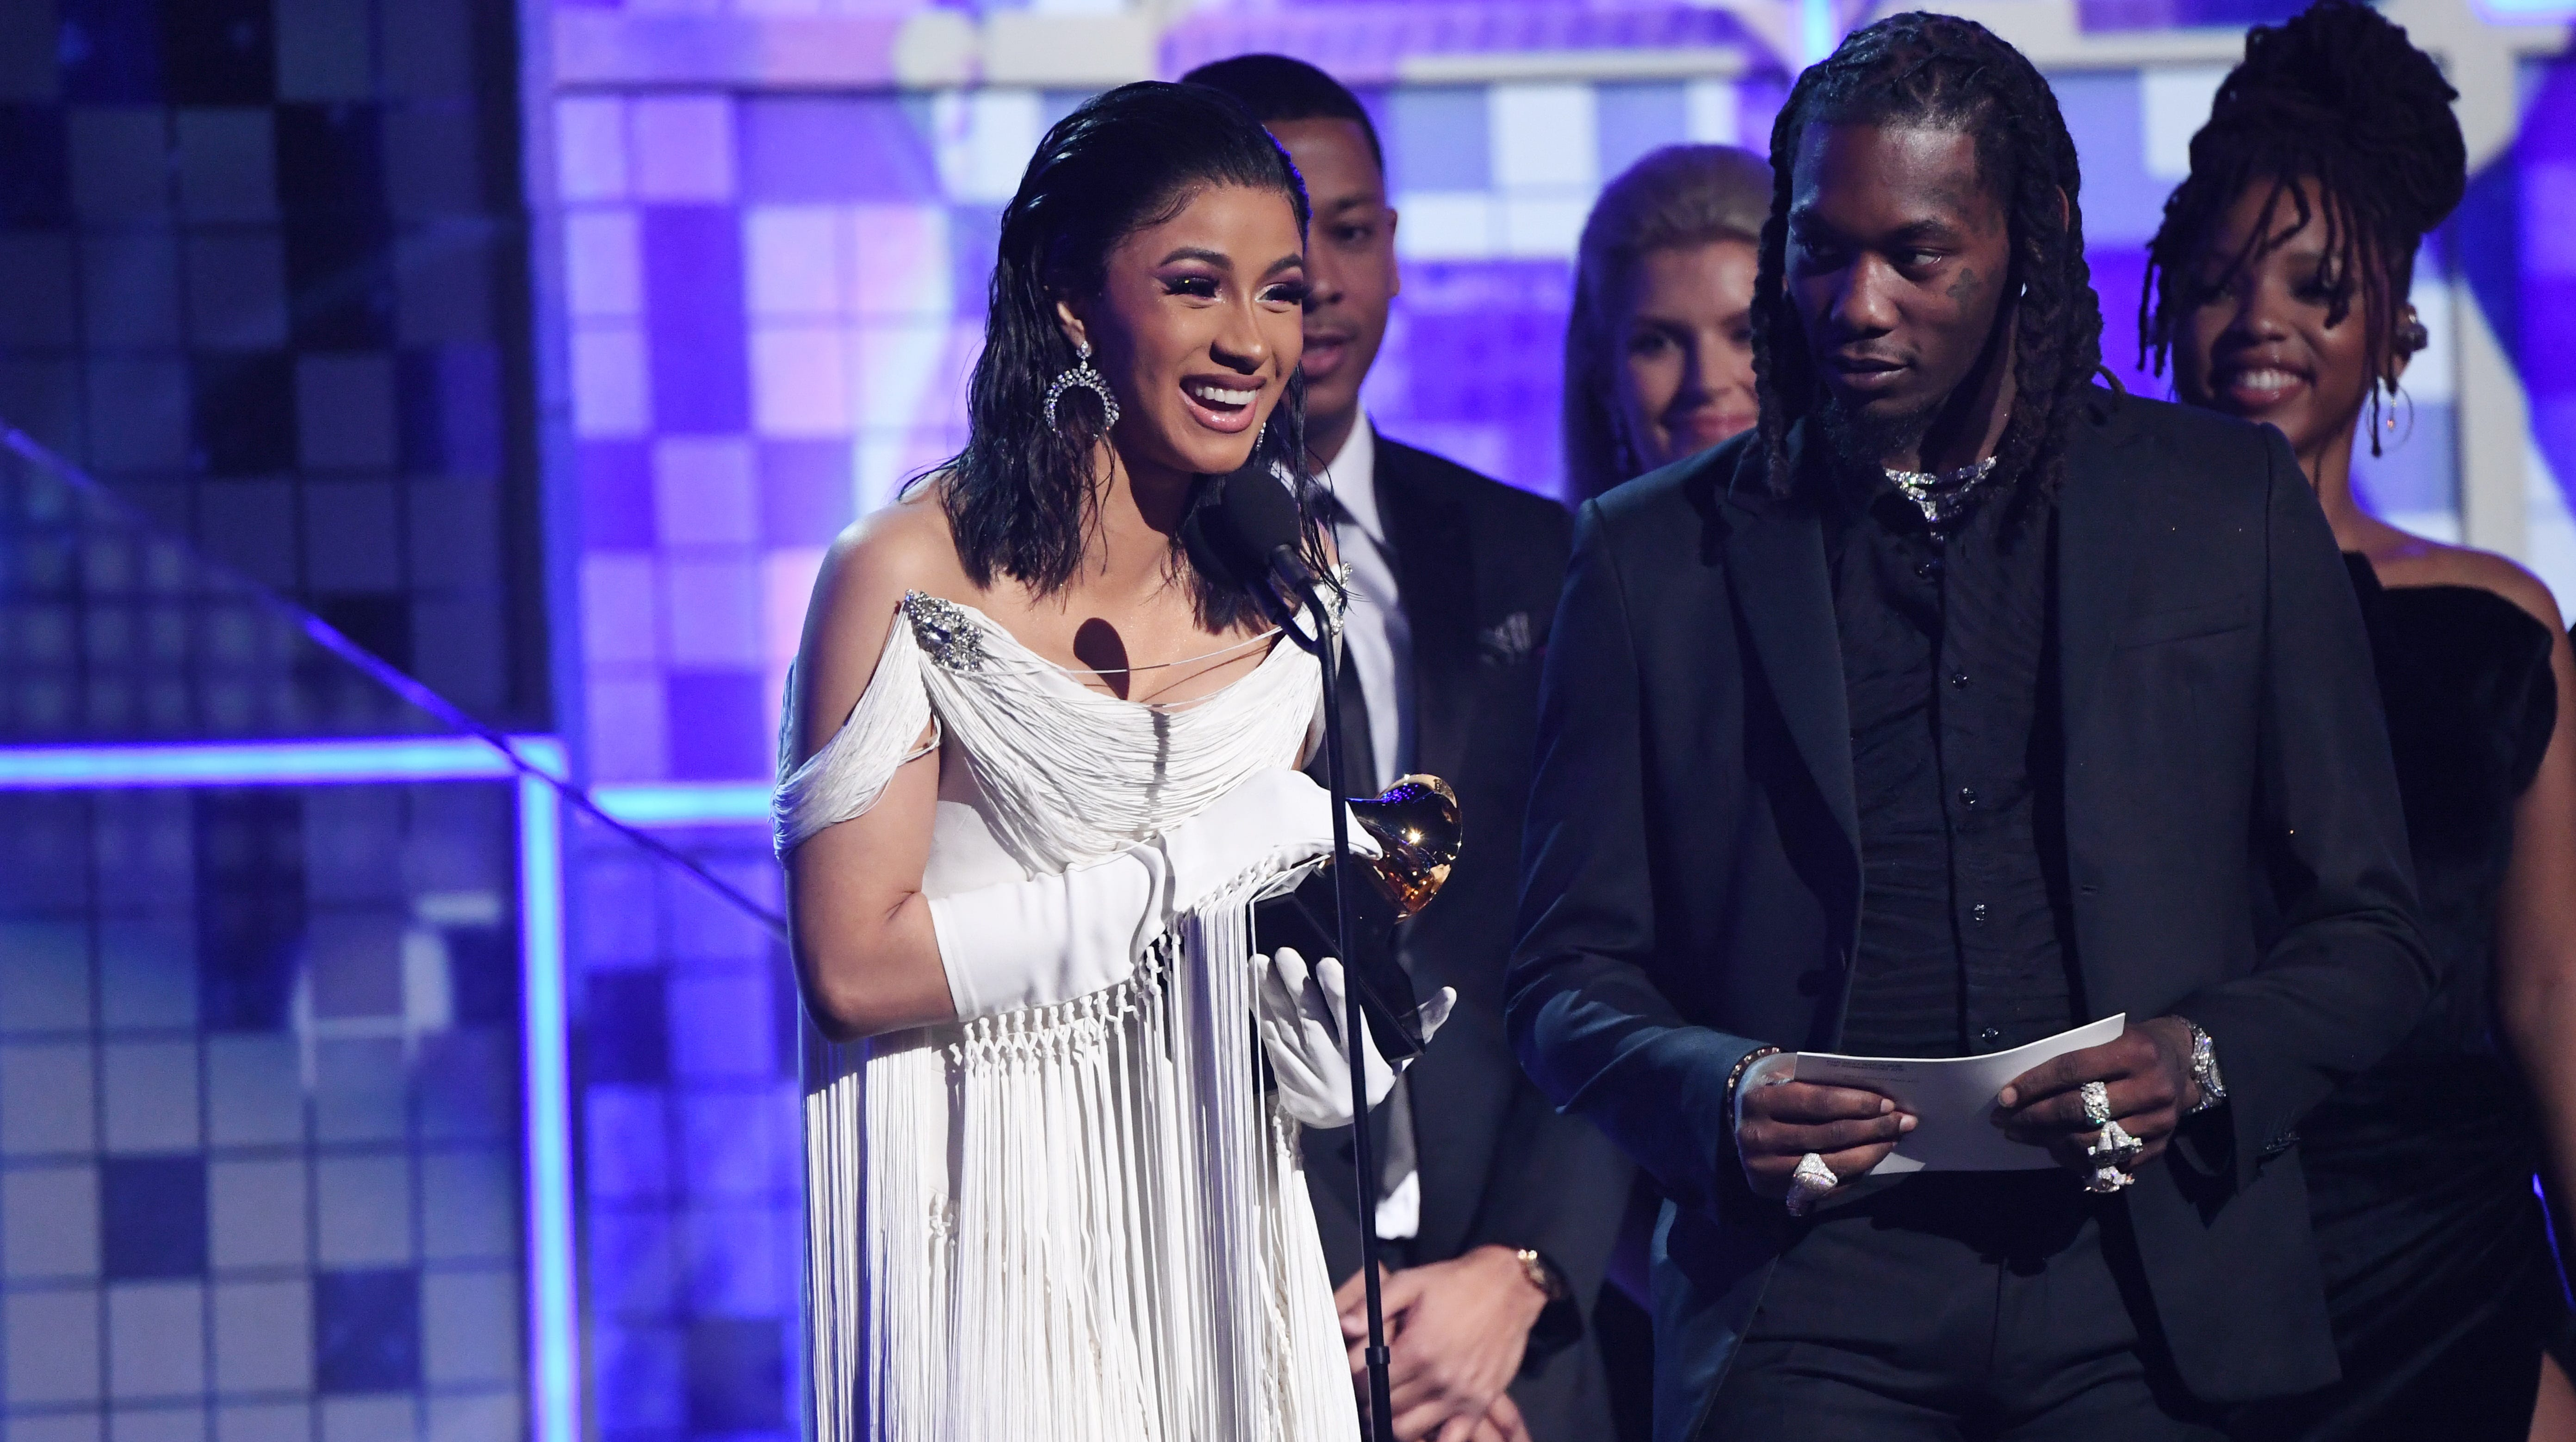 Fresh off Grammy win, Cardi B tears up at hearing daughter say 'mama' for the first time